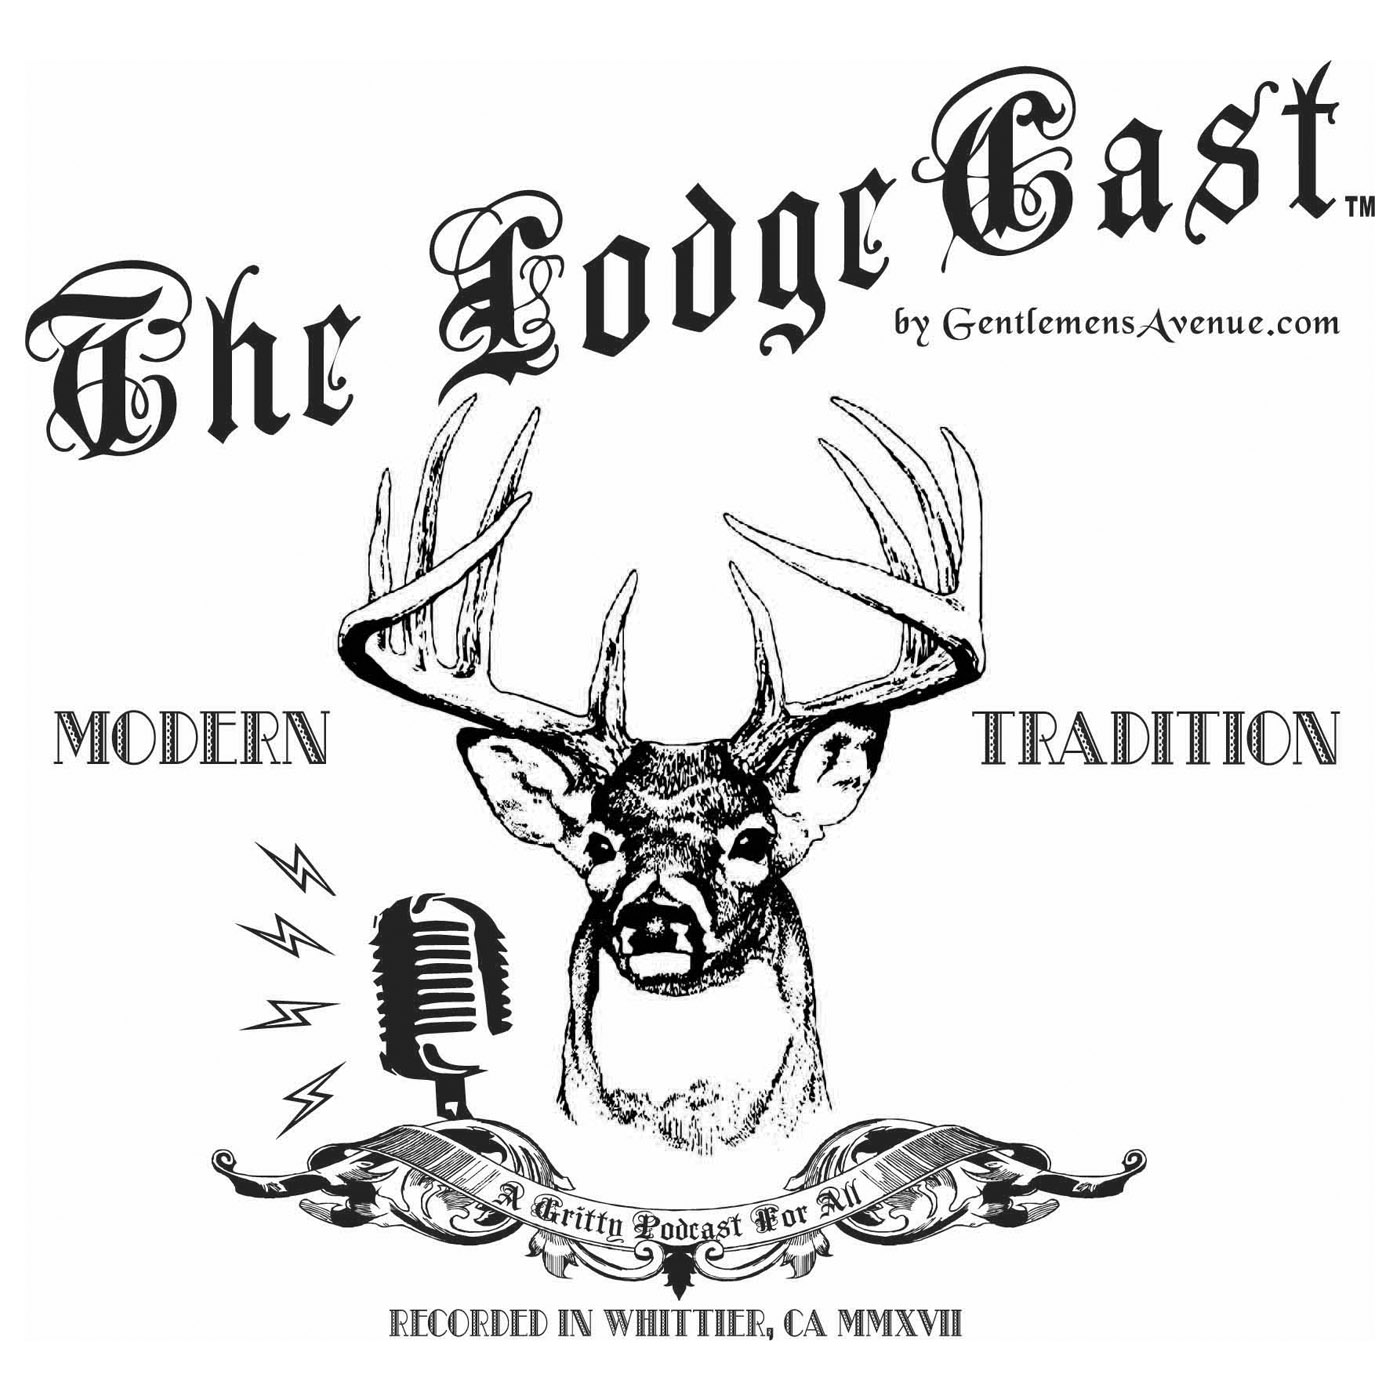 The LodgeCast